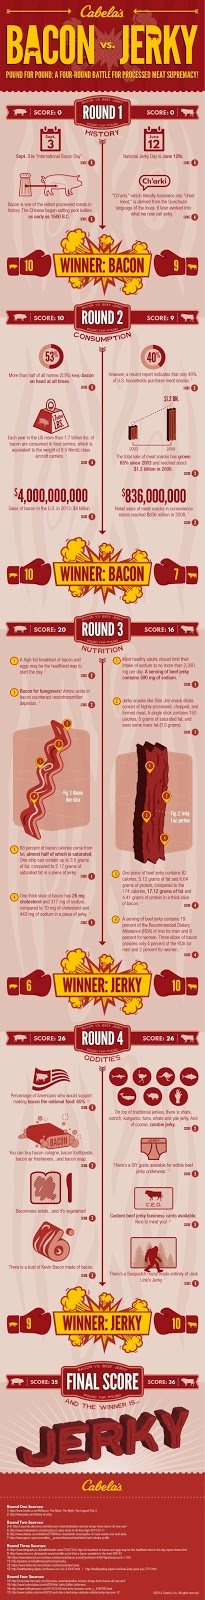 Bacon vs Jerky [Infographic]